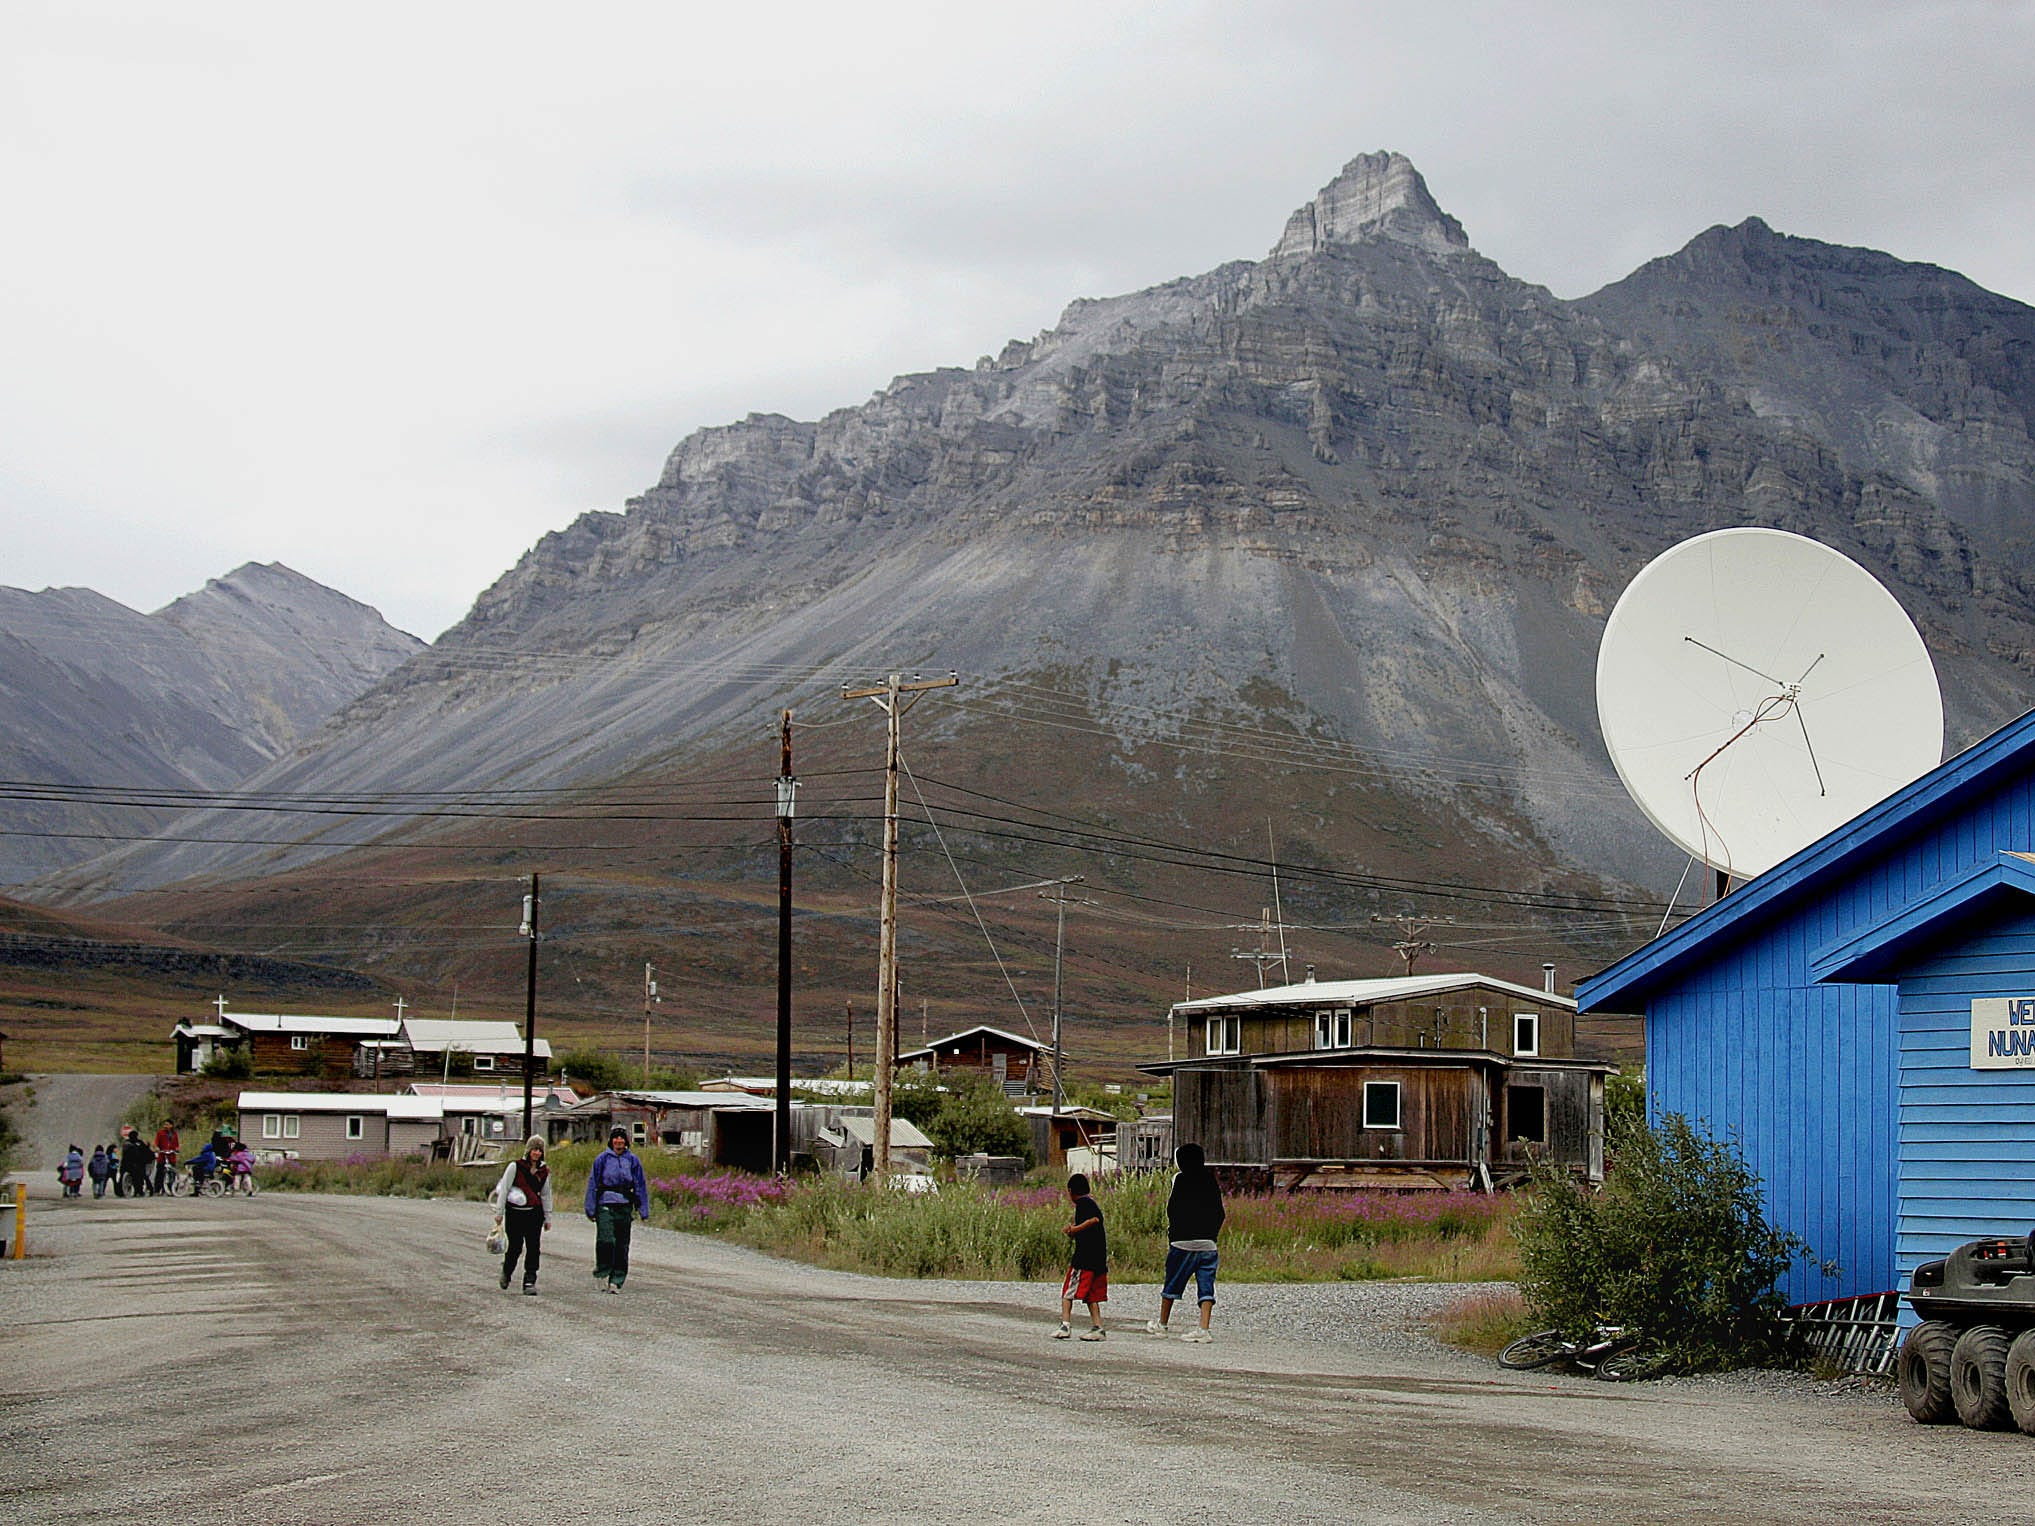 ** FOR IMMEDIATE RELEASE--ONE OF FIFTEEN PHOTOS BY AP PHOTOGRAPHER AL GRILLO **Villagers and visitors walk the dirt road past the Nunamiut  store in Anaktuvuk Pass, Alaska, Aug. 9, 2005.  The village, with some 300 residents, is the only community within the Gates of the Arctic National Park and one of the rare villages with a museum. The Simon Paneak Memorial Museum offers a comprehensive look at a once-nomadic people, as well as local artwork for sale, including caribou skin masks trimmed with wolf, fox or bear fur.  (AP Photo/Al Grillo) ORG XMIT: NY422